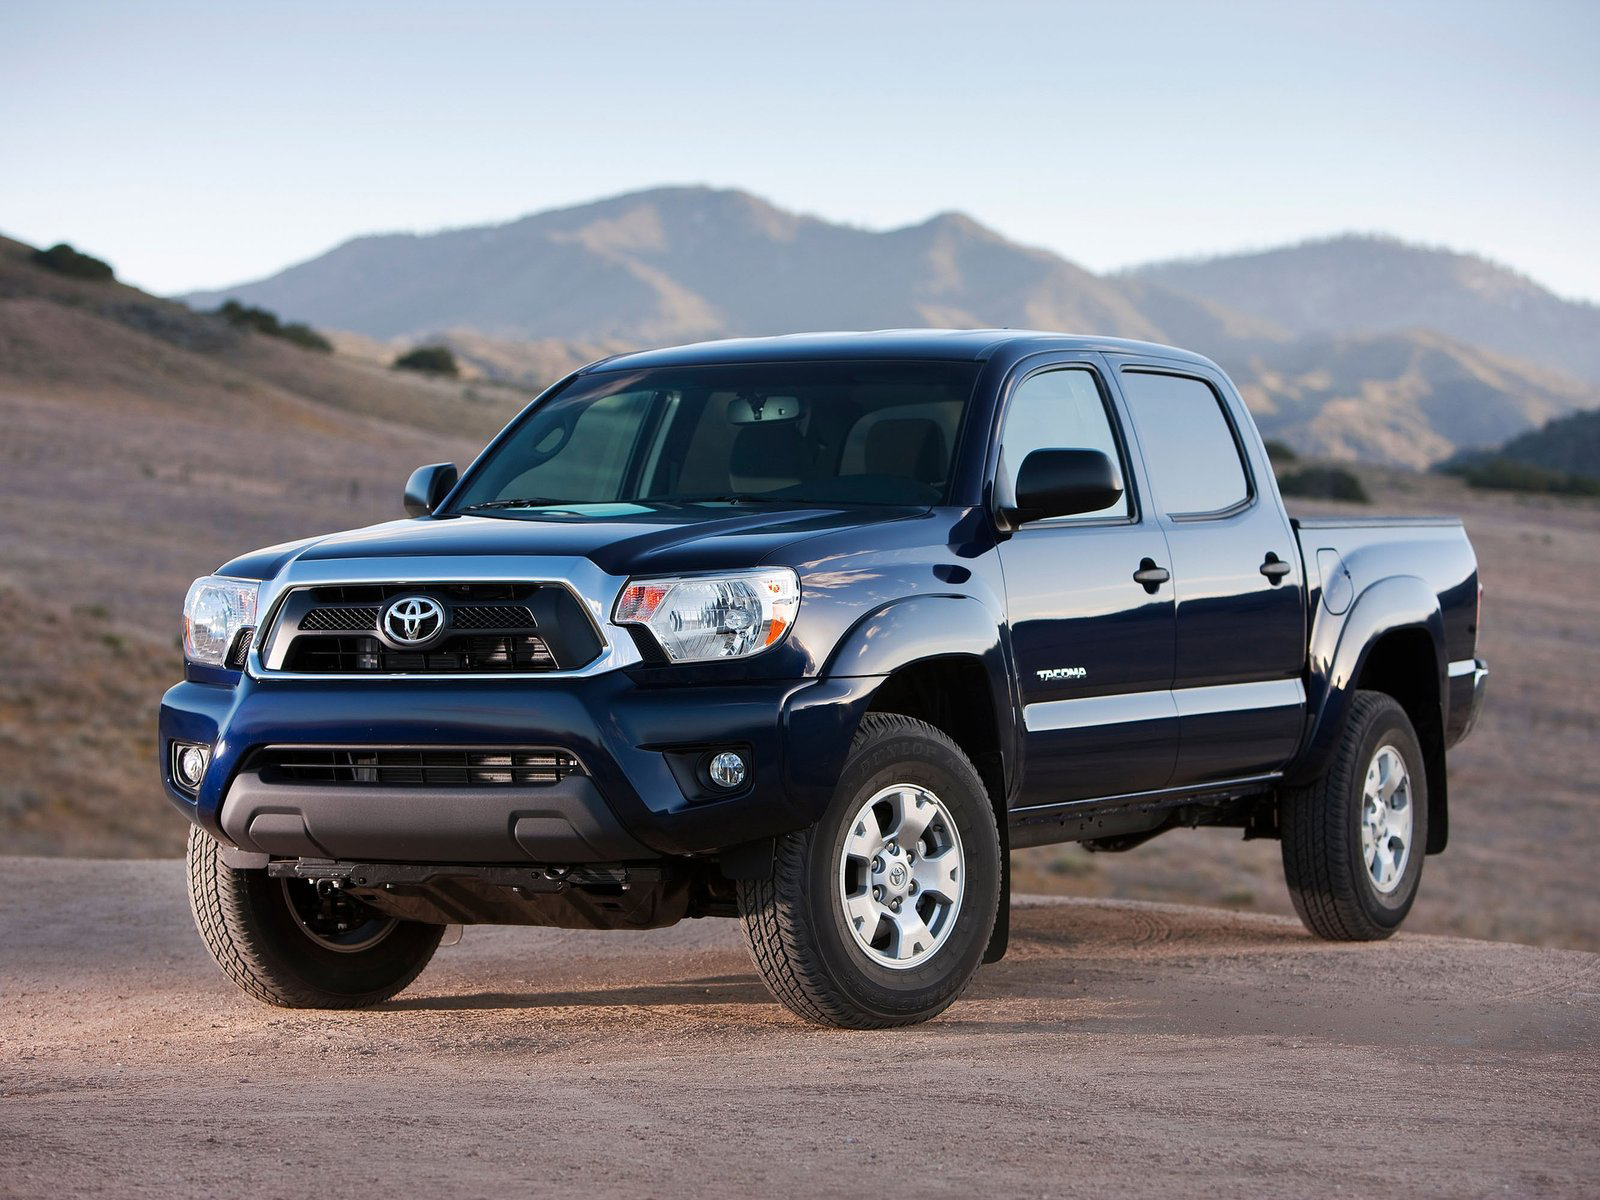 2012 Toyota Tacoma Wallpaper 1 Car Walls 1600x1200